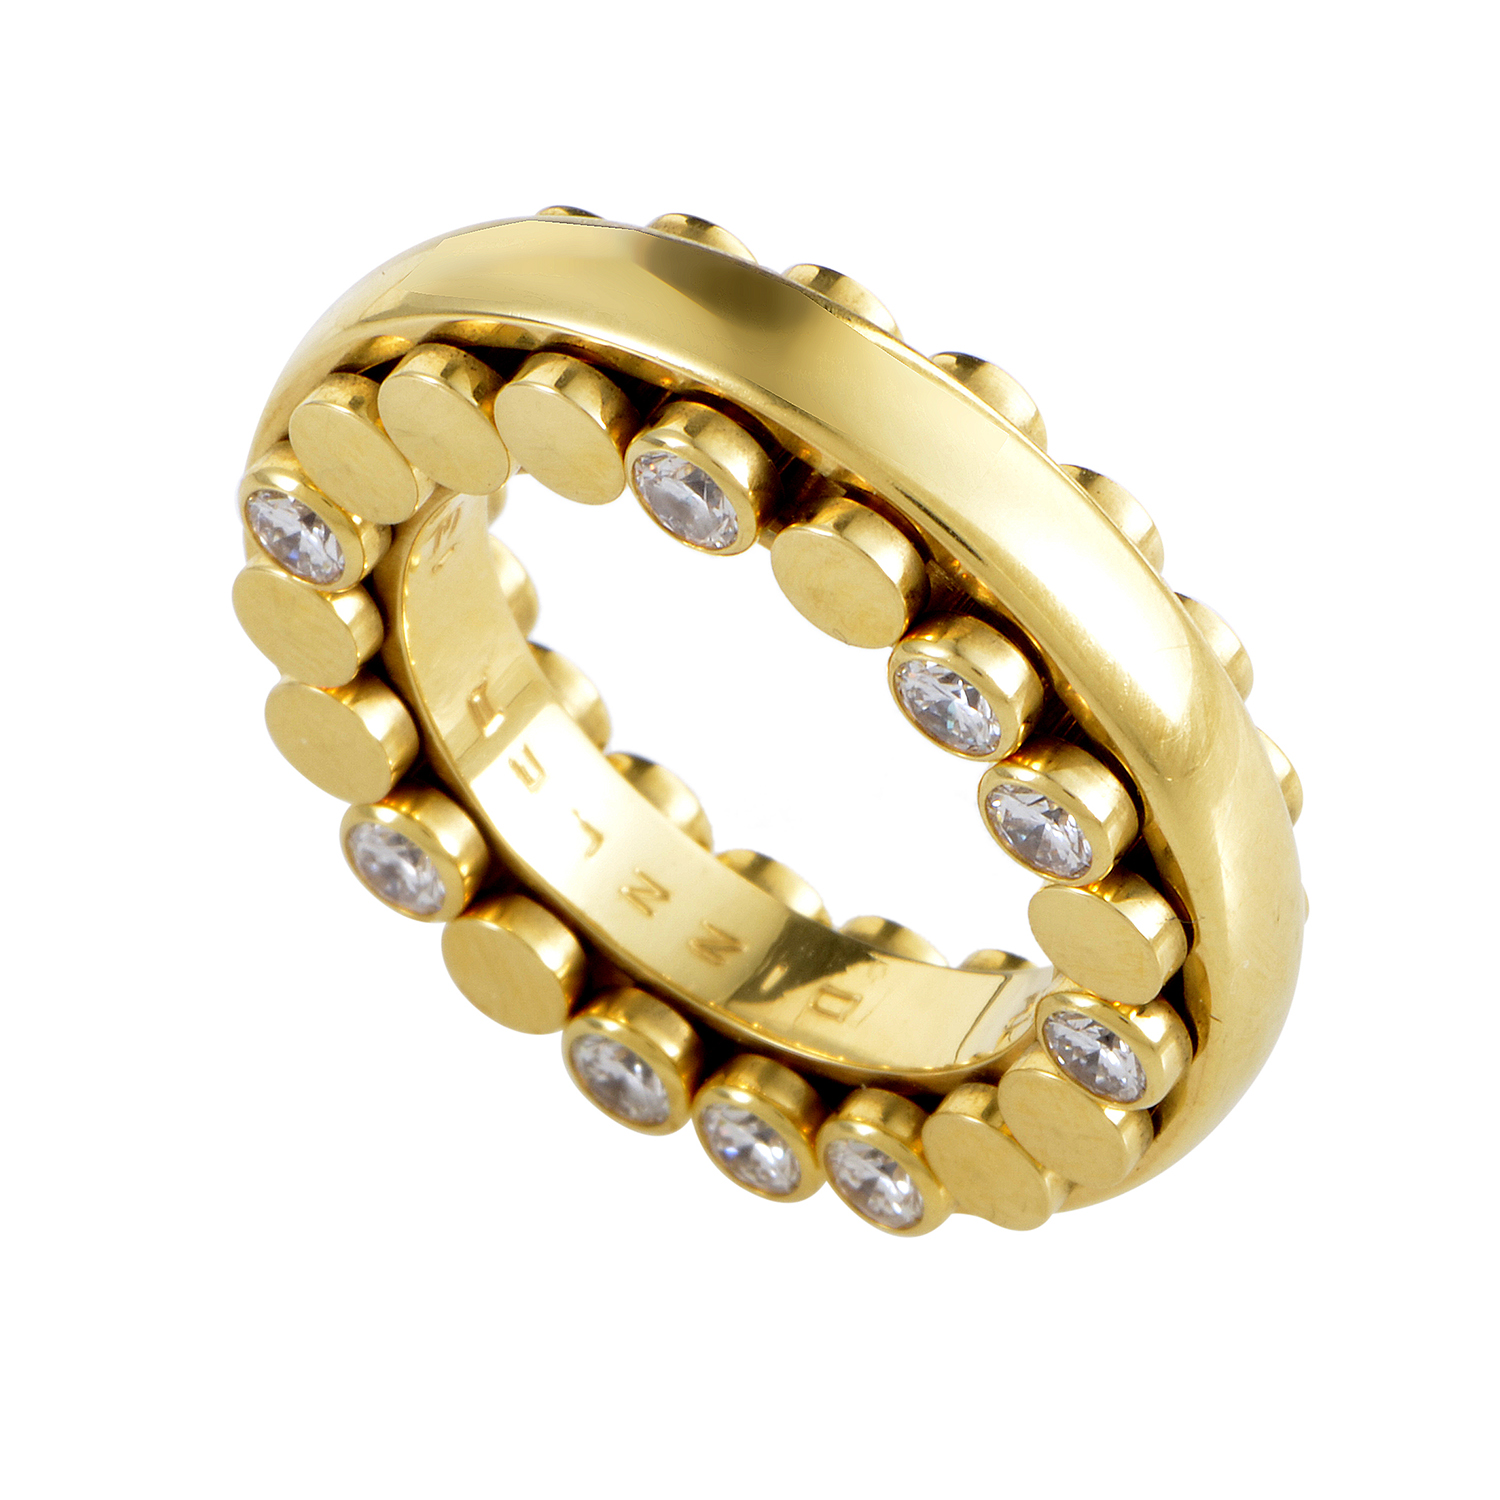 Dizzler 18K Yellow Gold Diamond Band Ring 0742-180-1